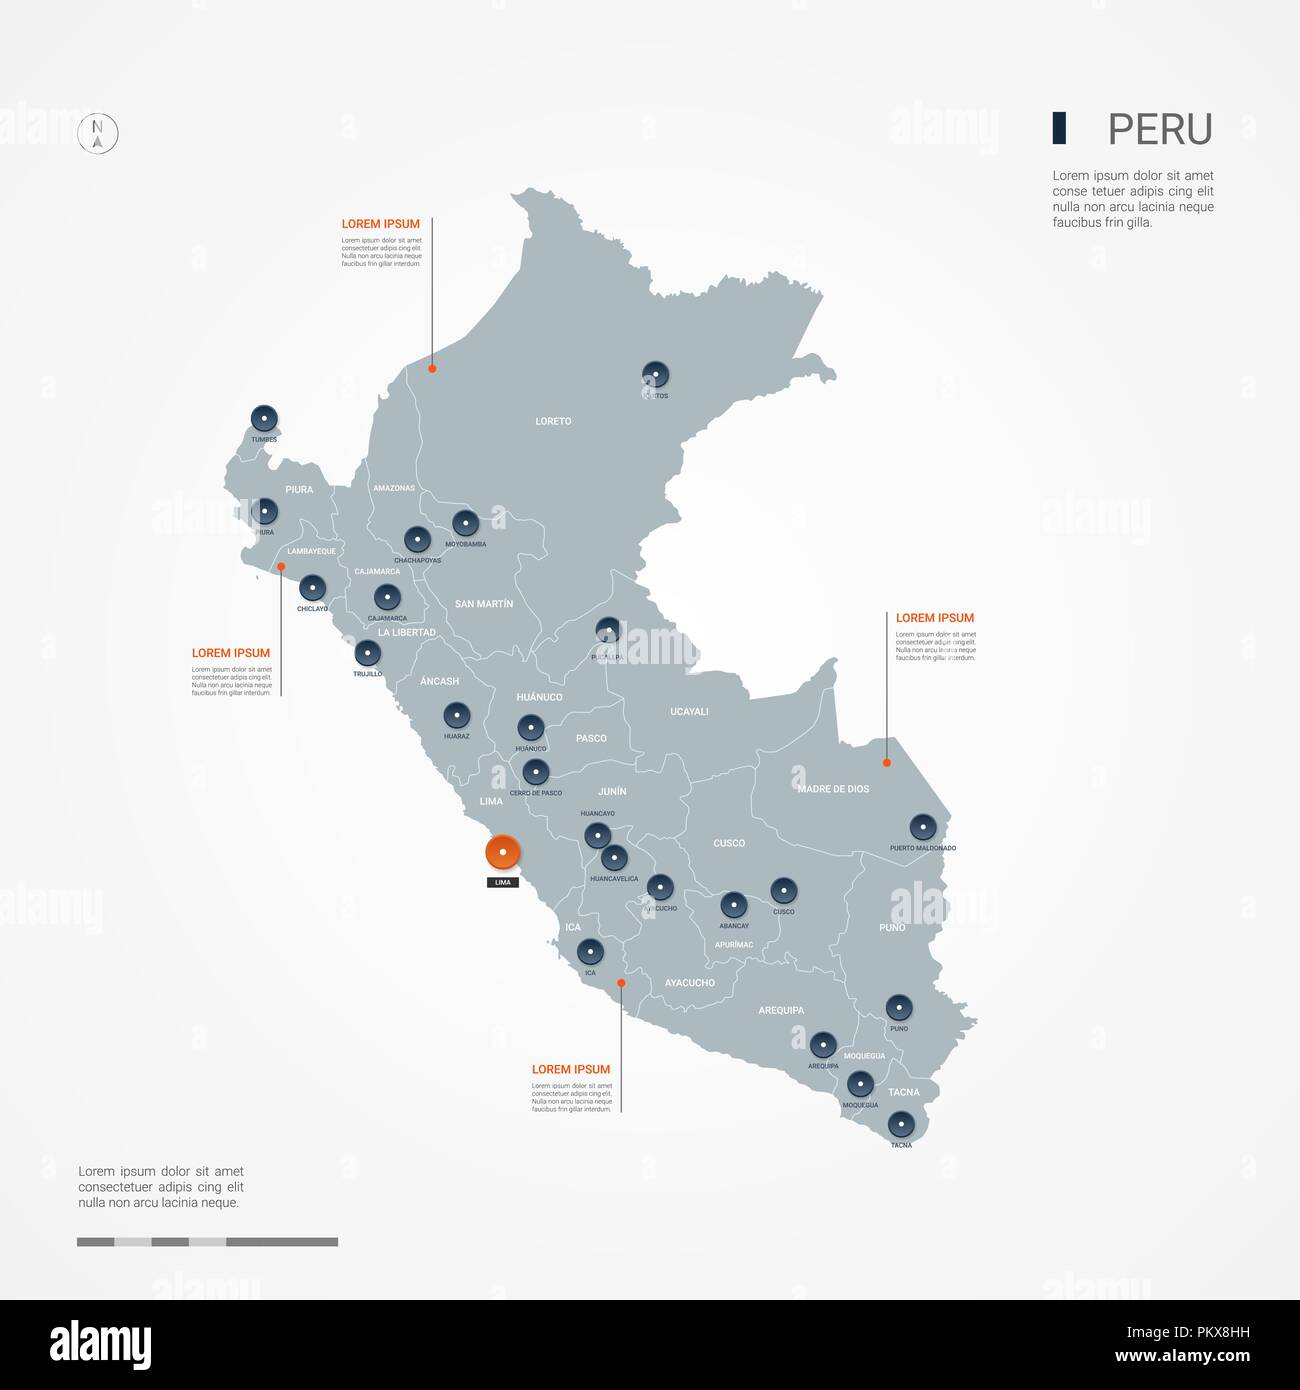 Peru Map Cities.Peru Map With Borders Cities Capital And Administrative Divisions